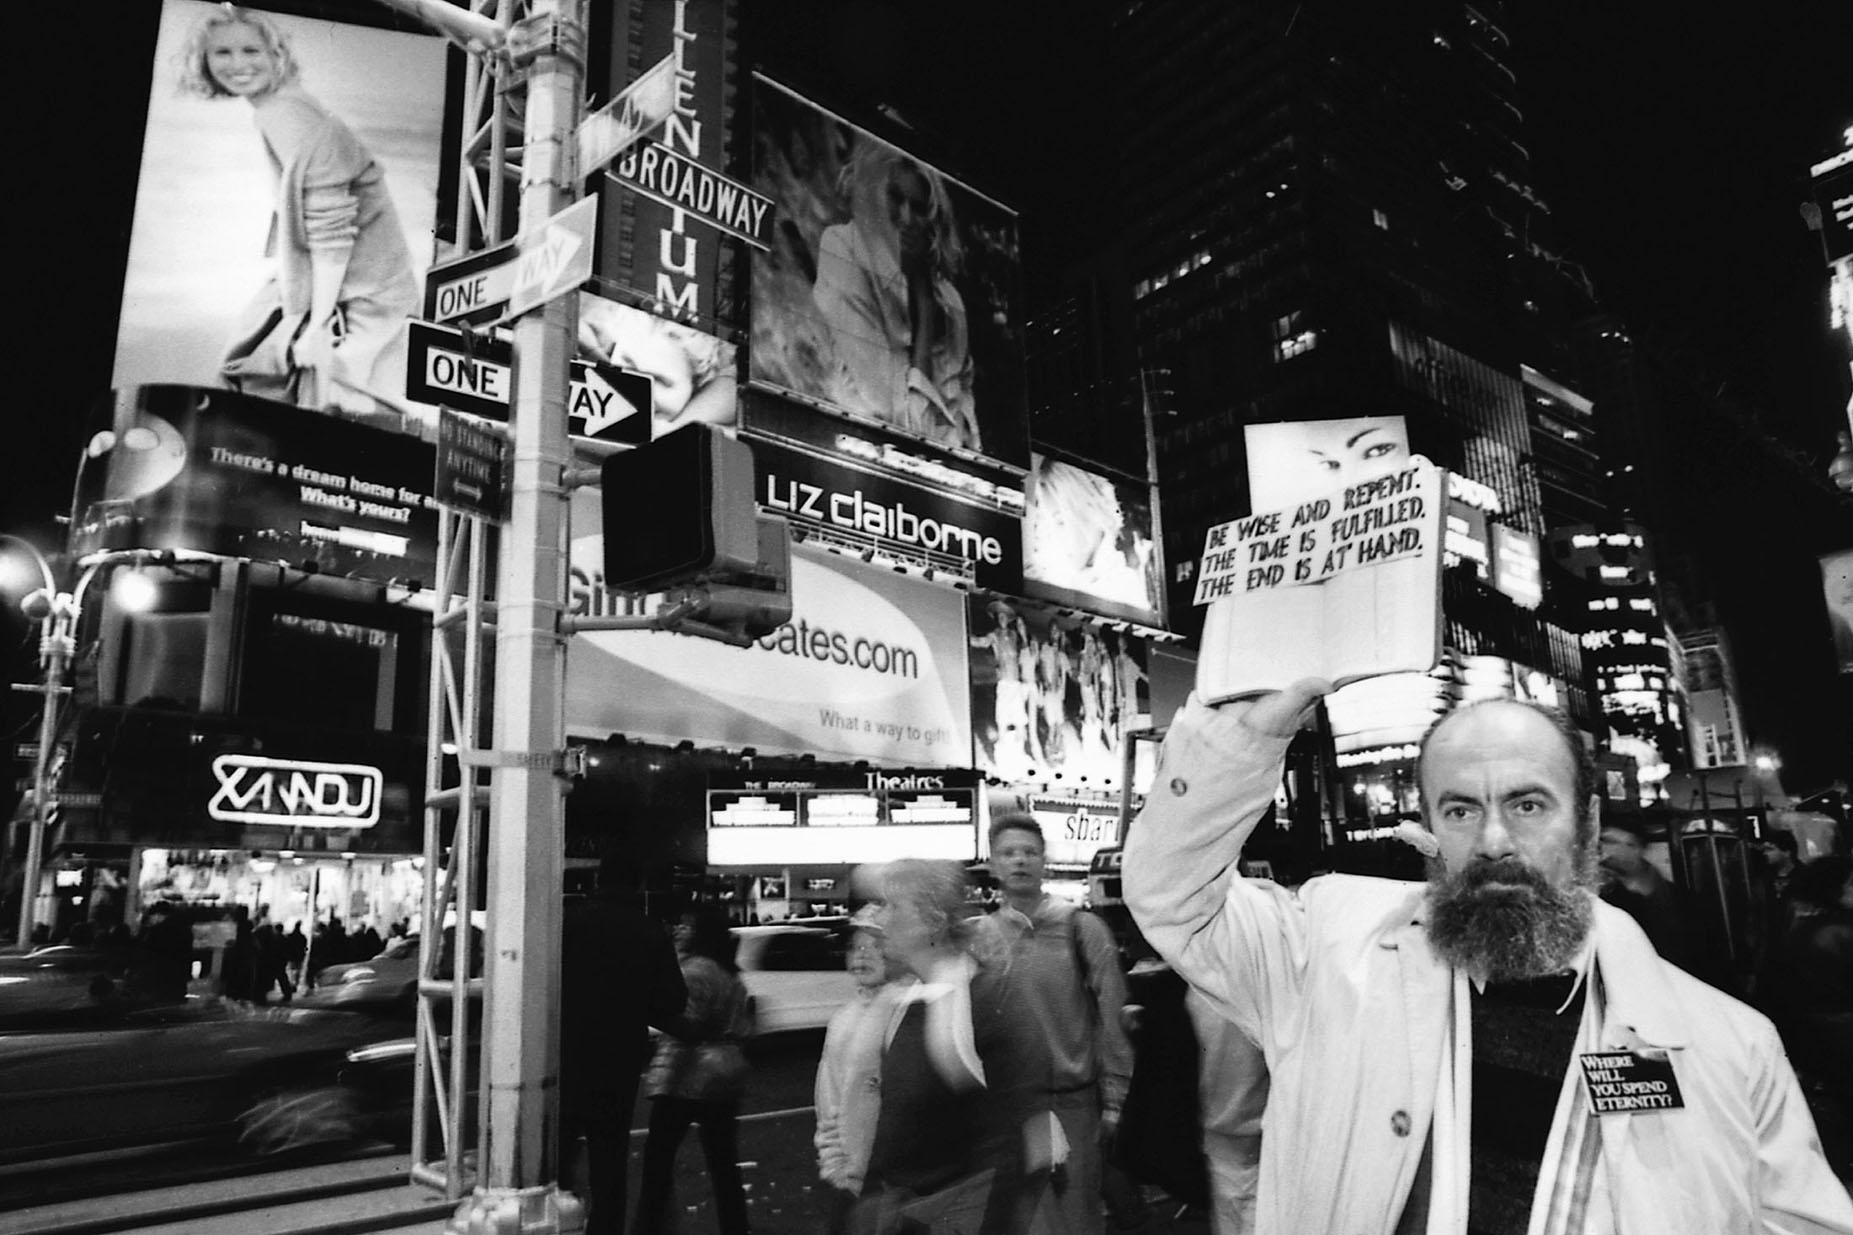 Be Wise and Repent. Joseph -Where Will You Spend Eternity- on Times Square, NYC